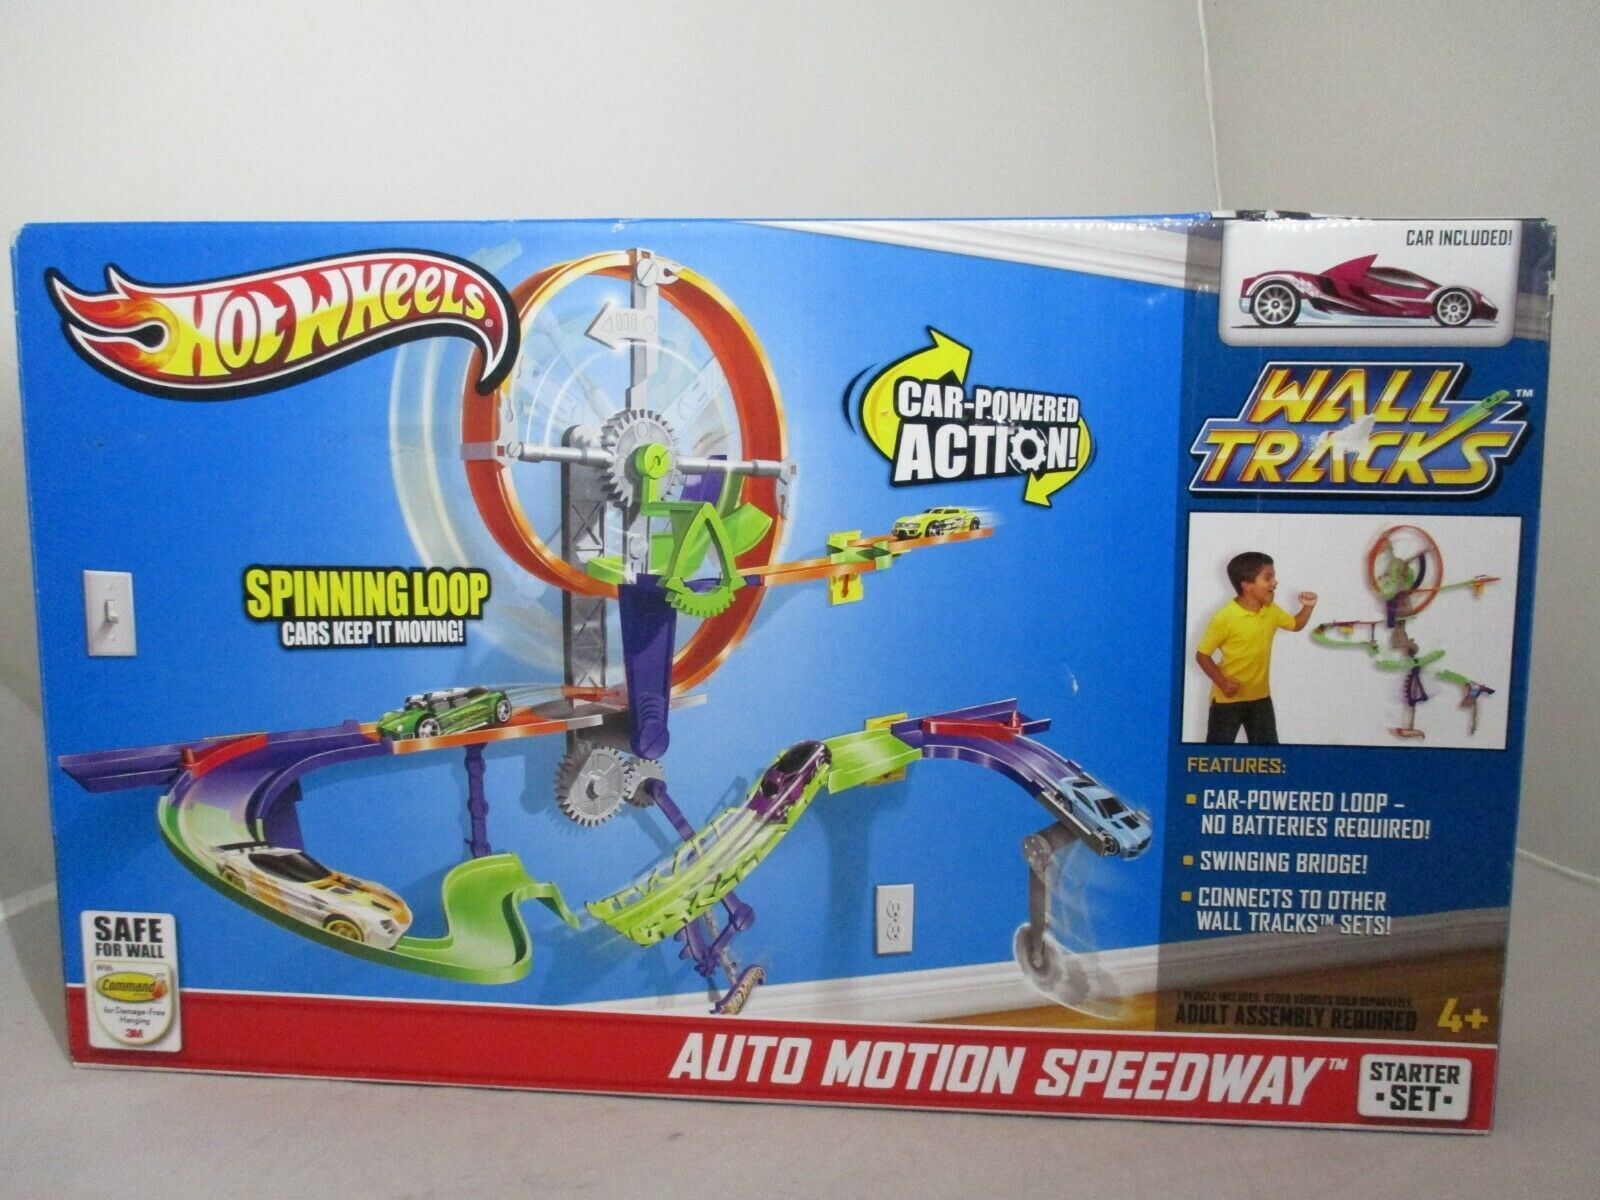 Primary image for Hot Wheels Wall Tracks Starter Set Auto Motion Speedway Mattel 2012 NEW!!!